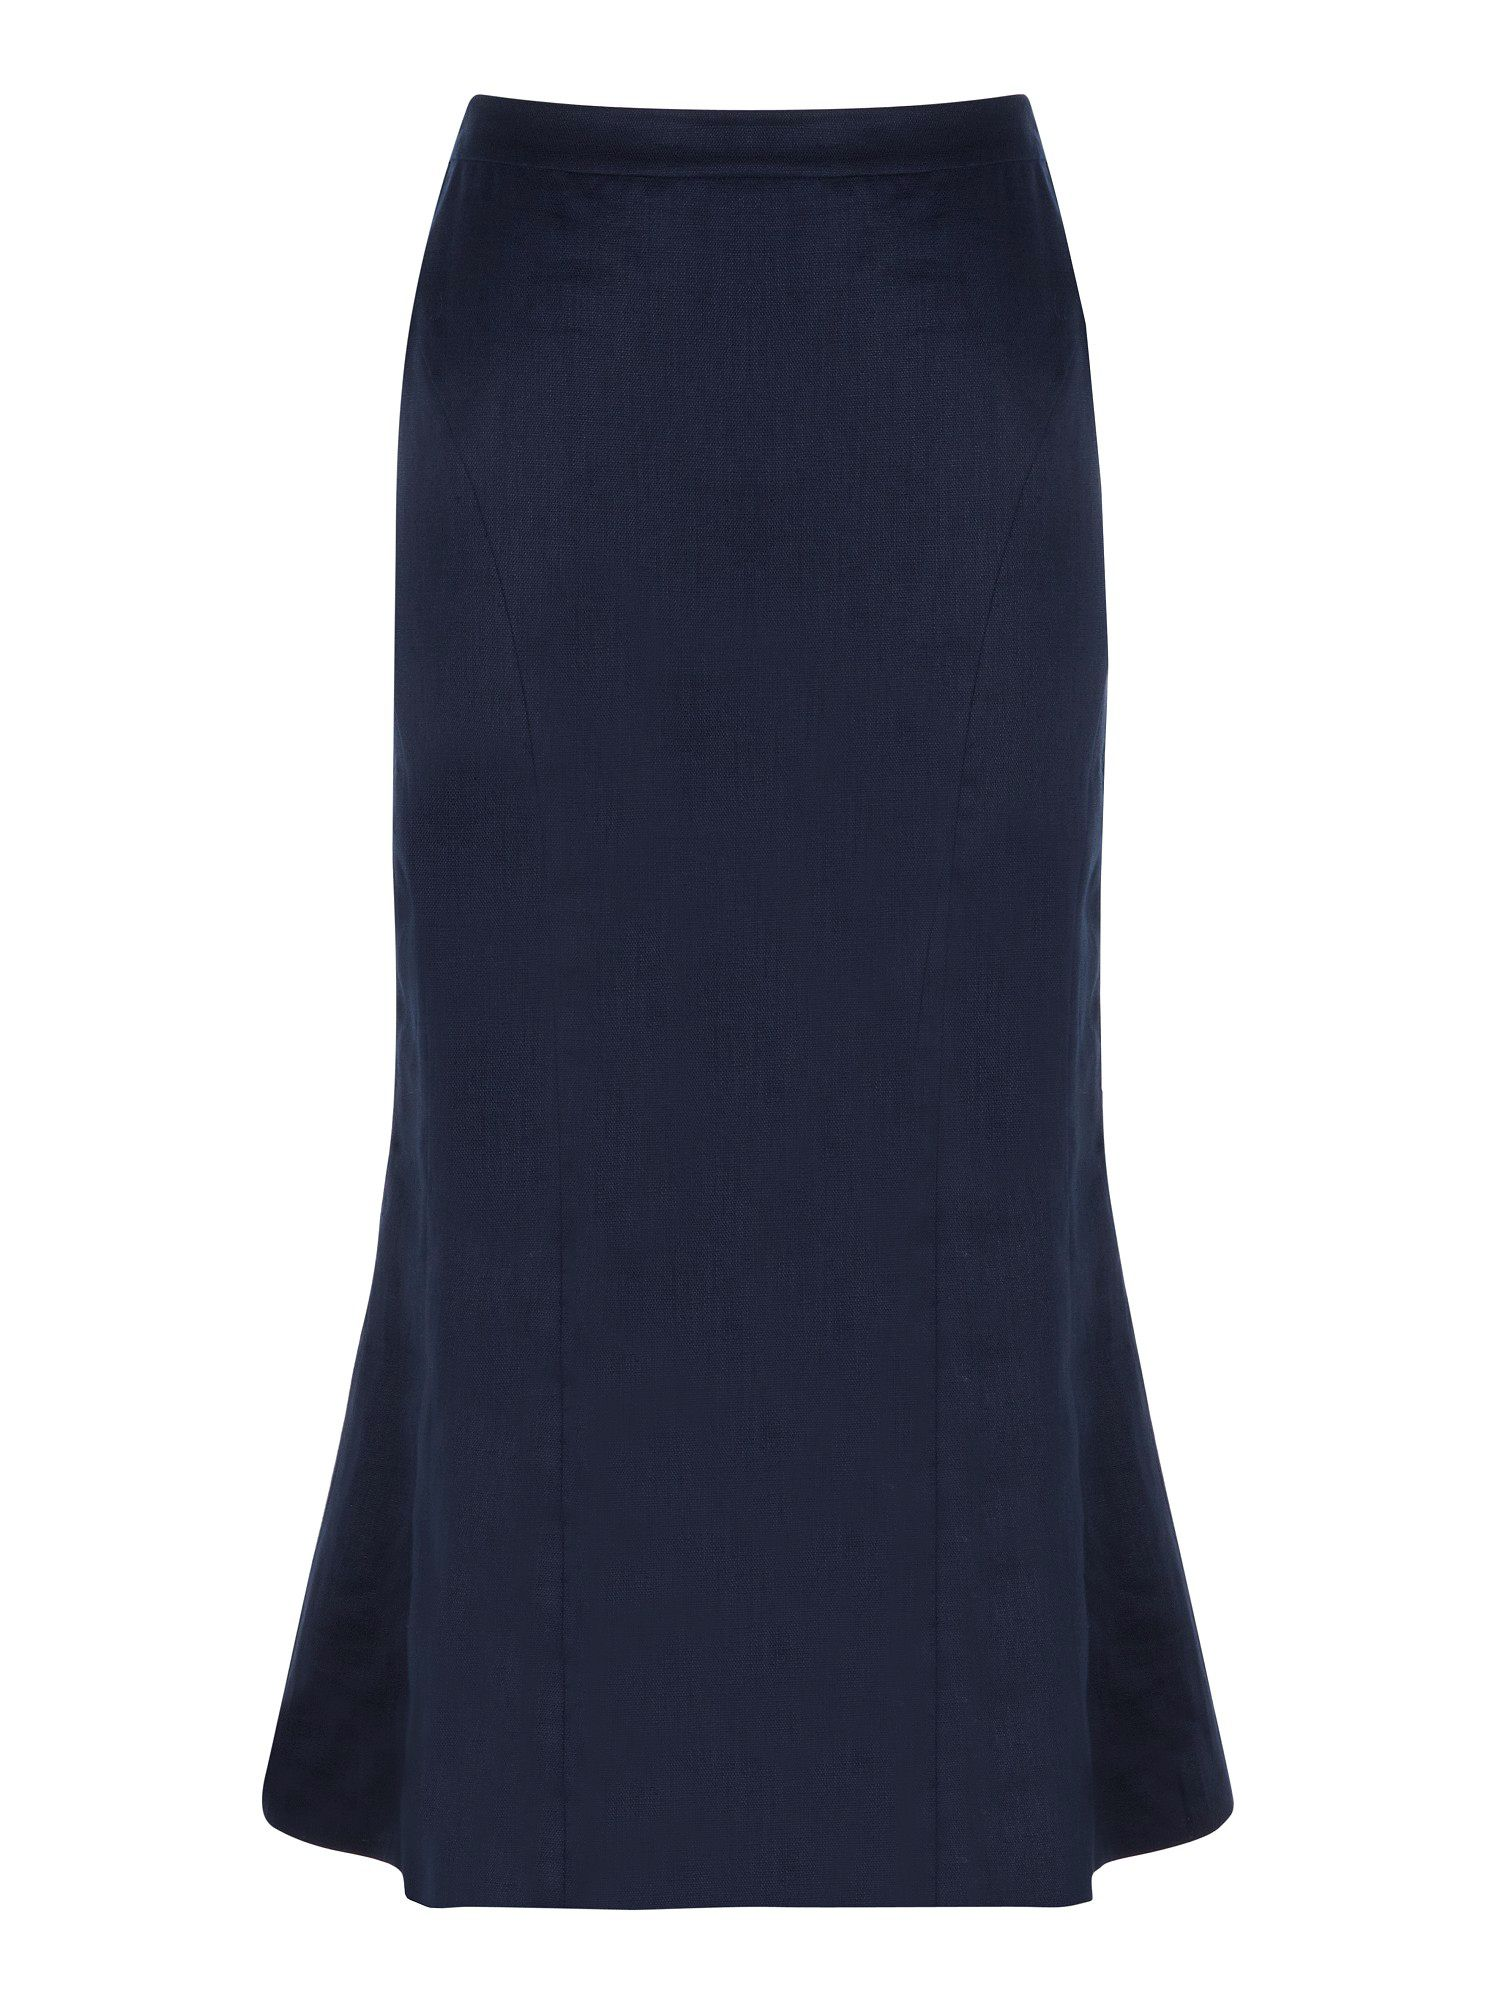 French navy linen skirt